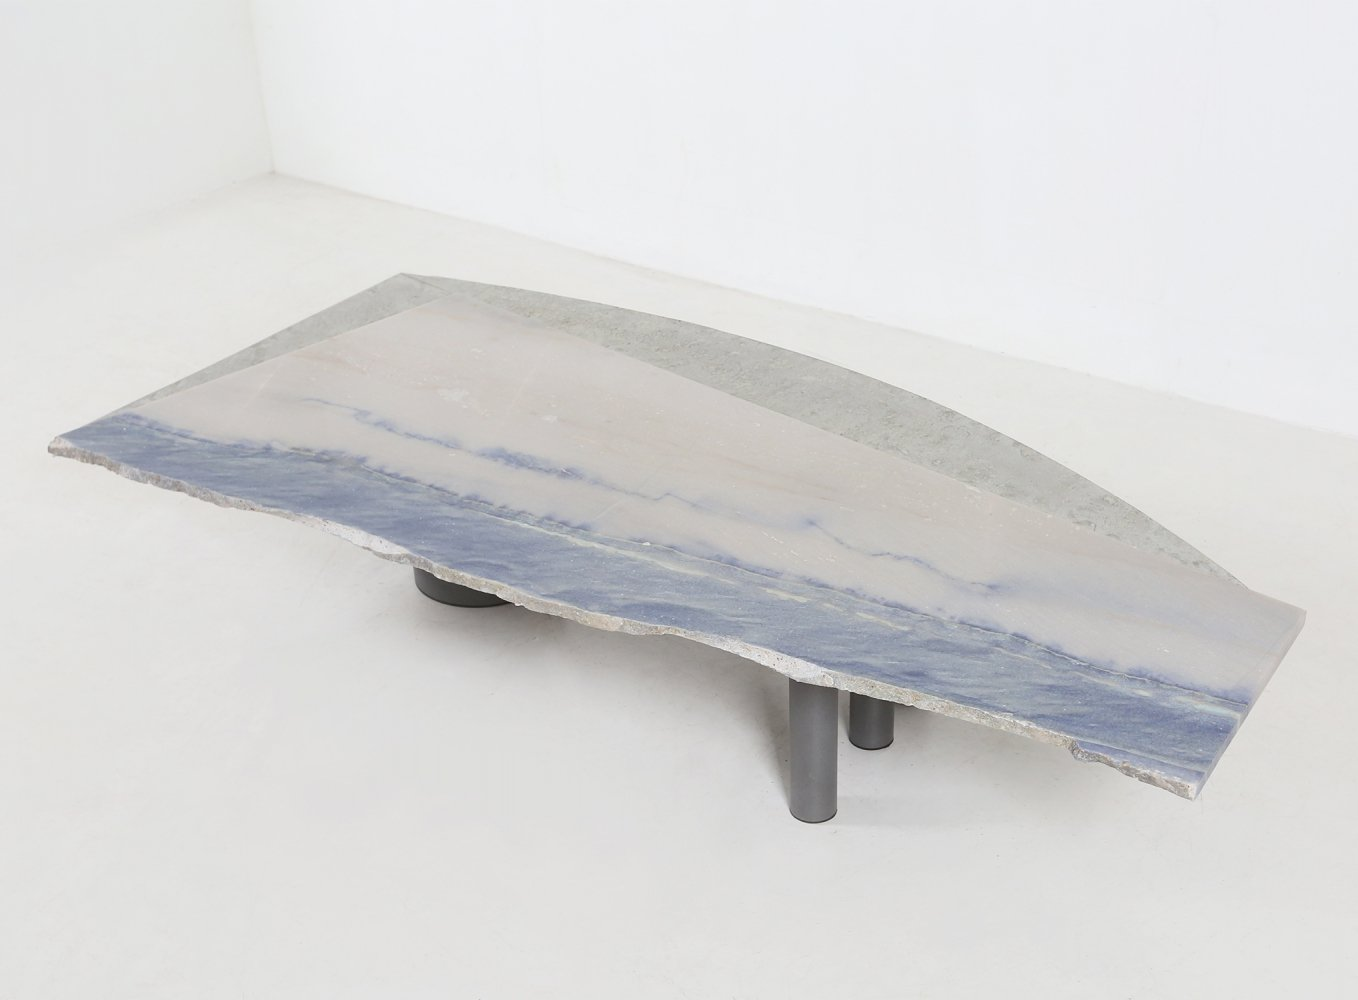 Rare Pia Manu table with a natural stone in dark blue & a metal tin edge, 1970s